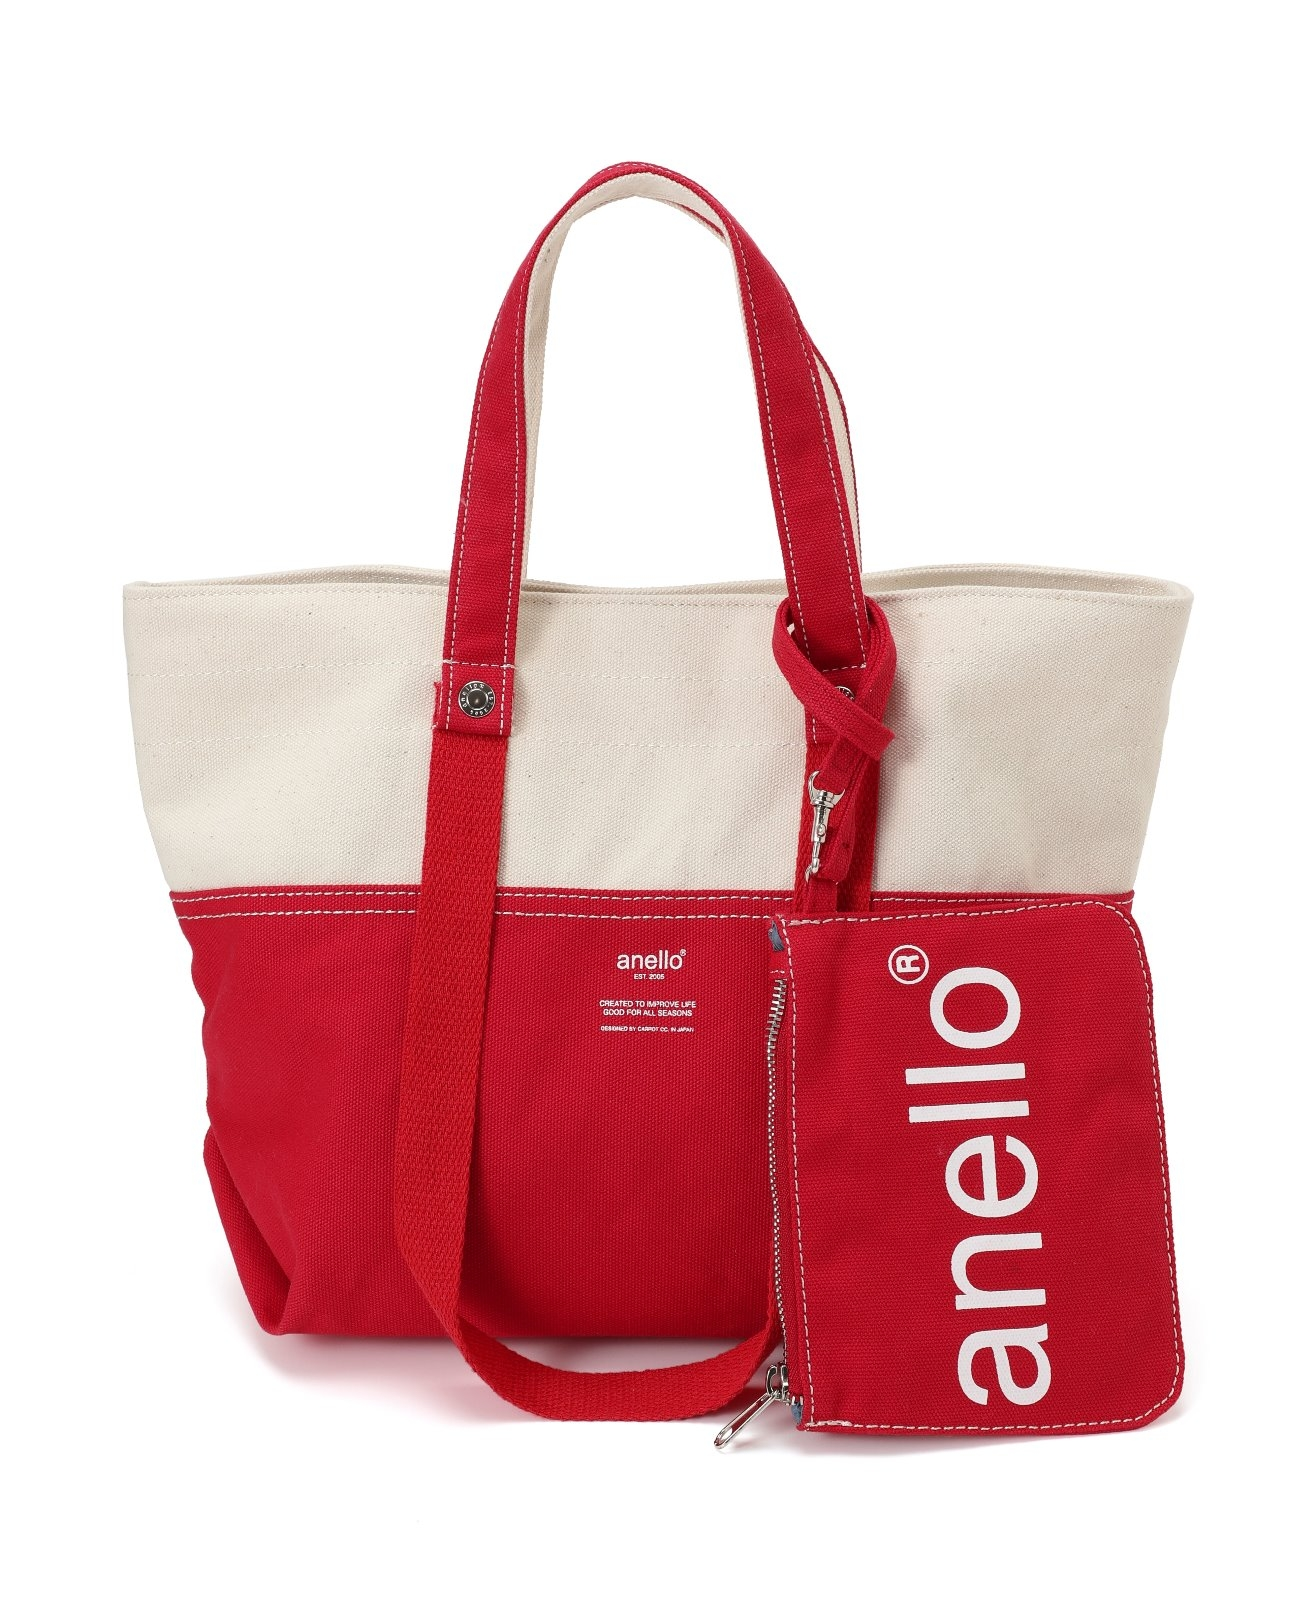 Japan official store limited item Cotton canvas  anello  logo printed  2ways tote bag 3f5b402c77914